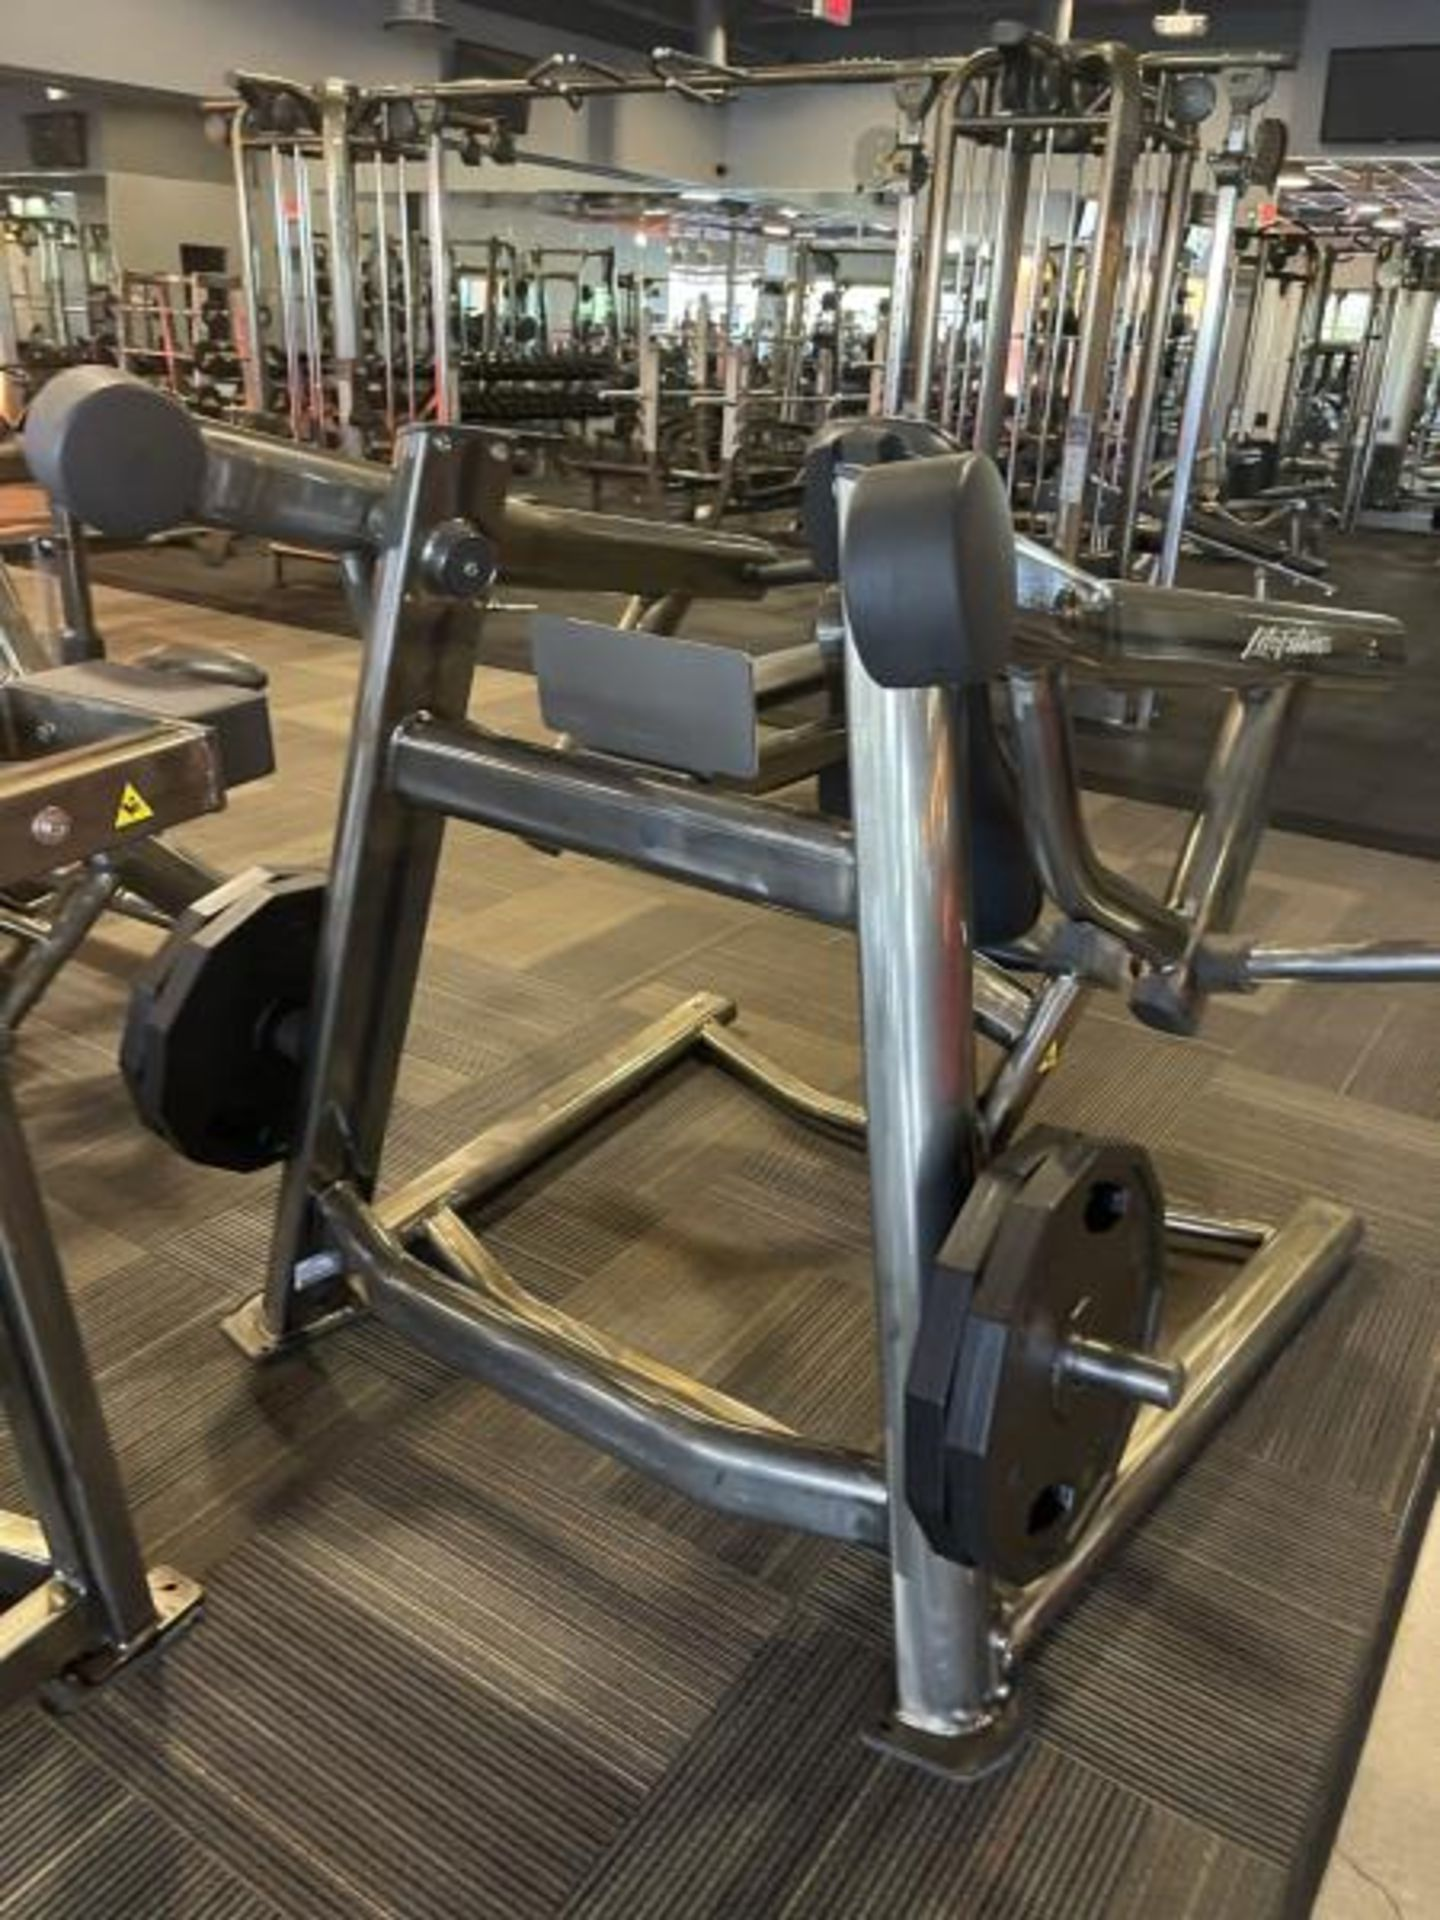 Life Fitness Shoulder Press M: SPLSP with 4 Iron Grip Weight Plates, 45# - Image 3 of 4